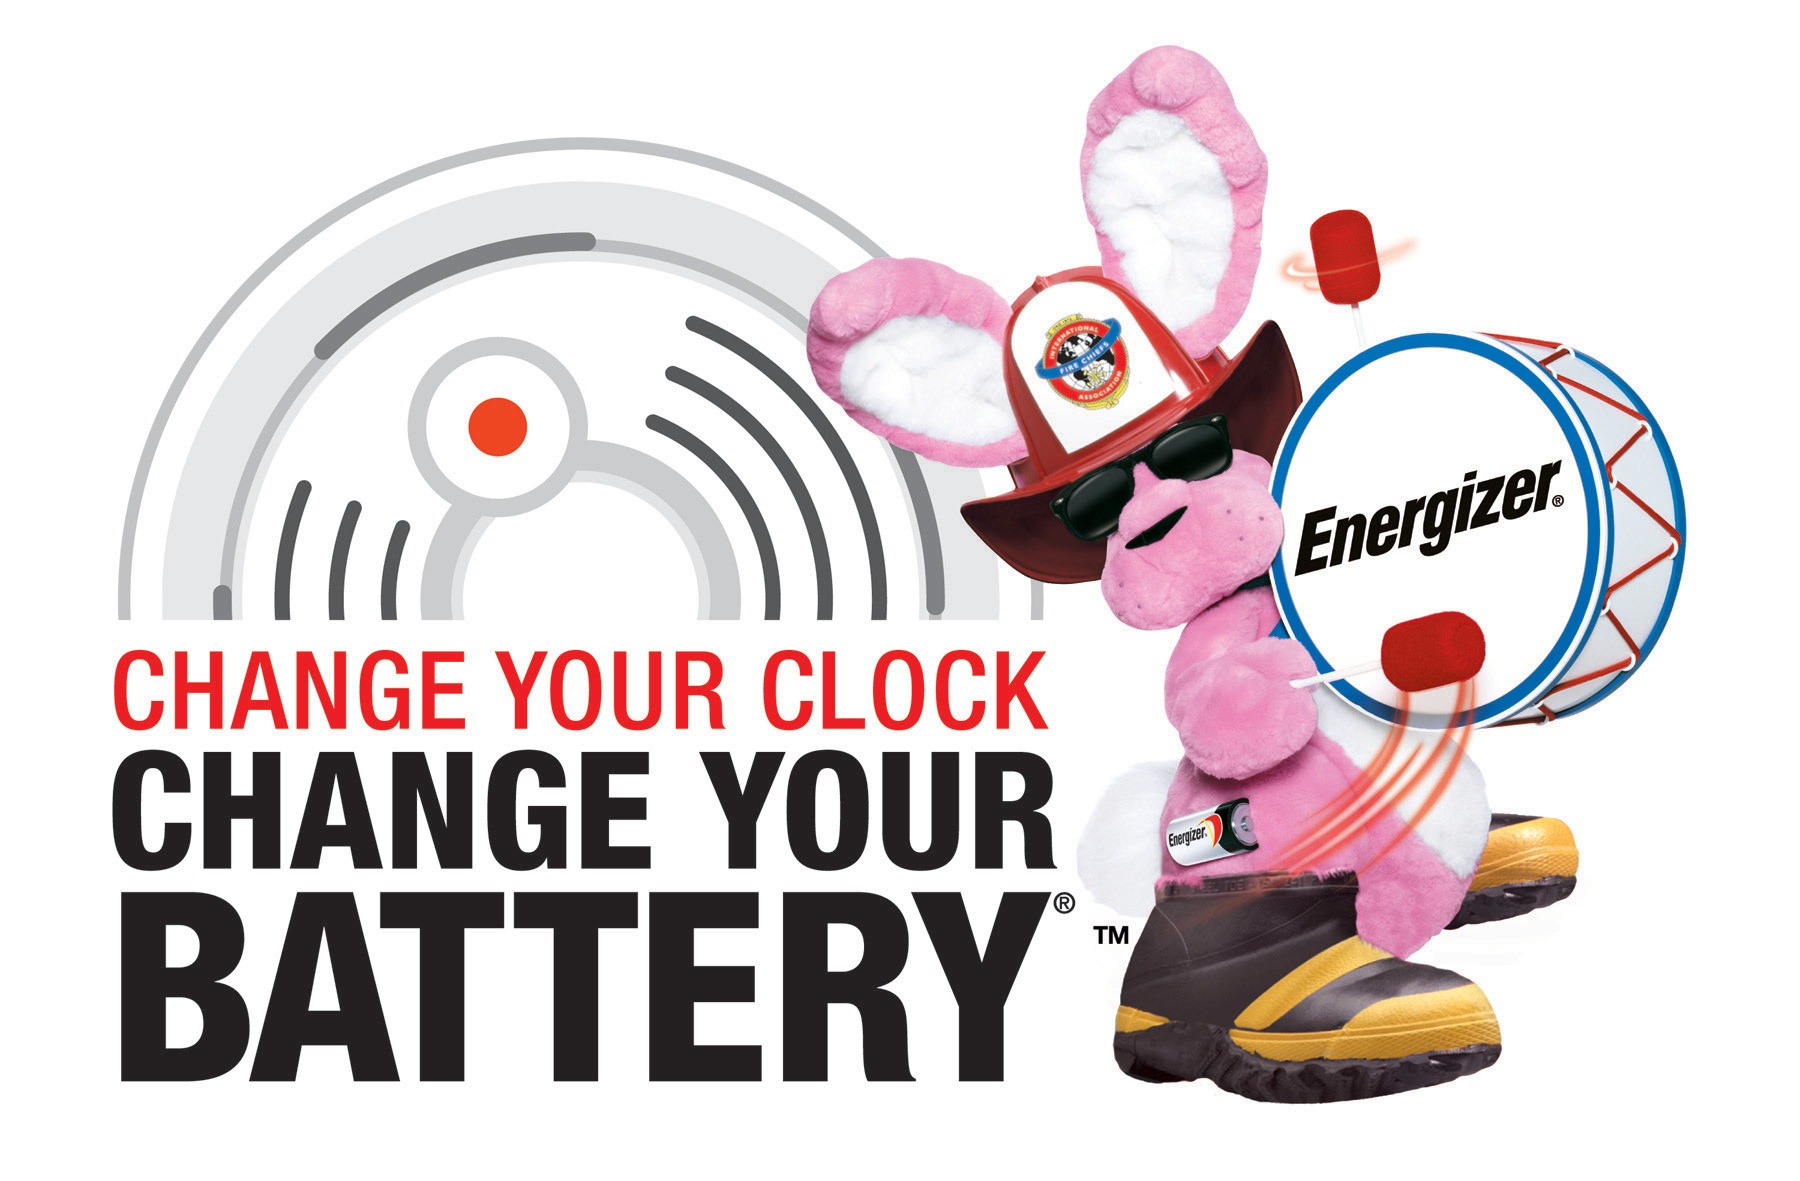 Change Your Clock, Change Your Battery